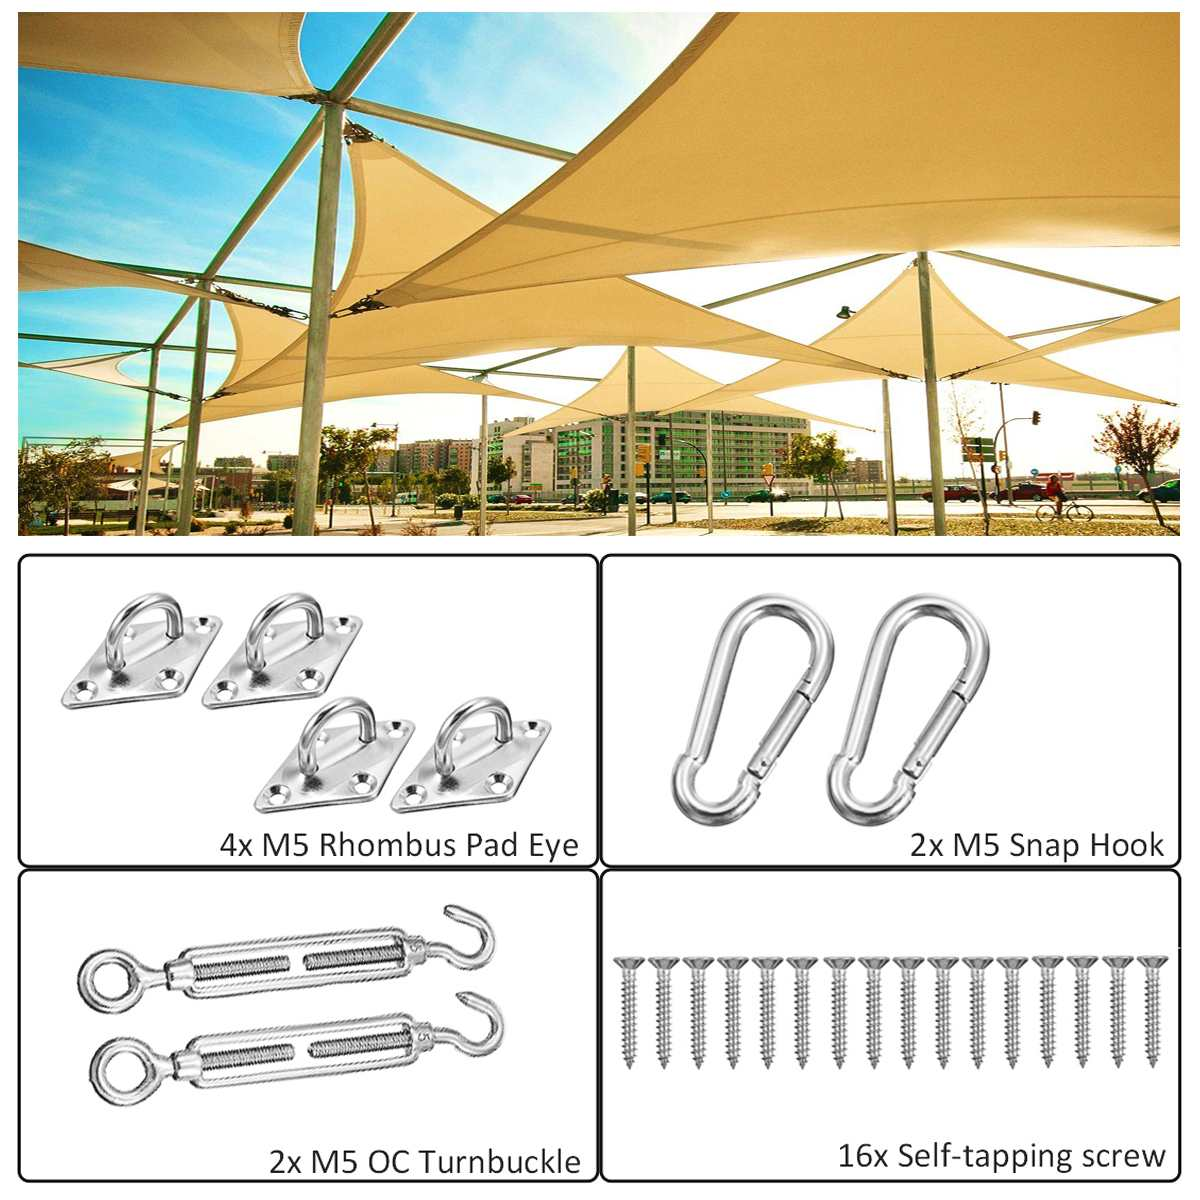 24pcs Sun Shade Sail Accessories For Triangle Or Square Shade Sail Replacement Fitting Tools